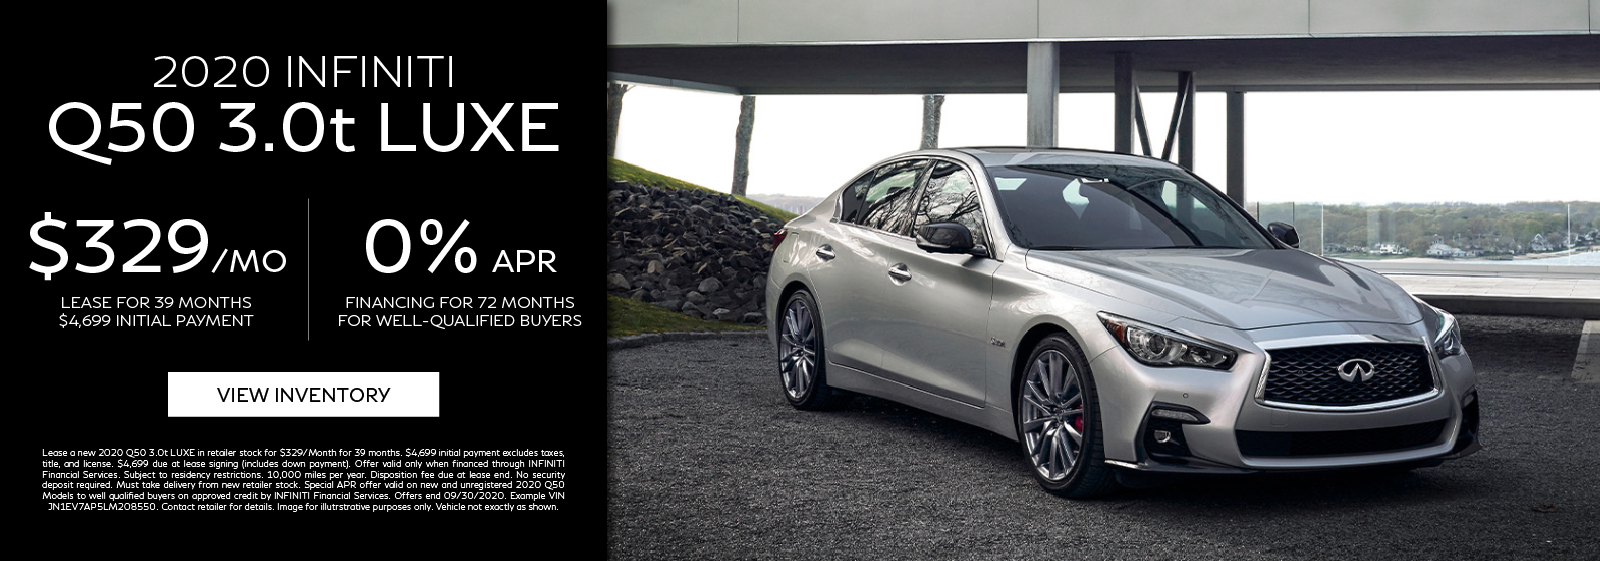 Lease a new 2020 Q50 3.0t LUXE for $329 per month for 39 months. Click to view inventory.